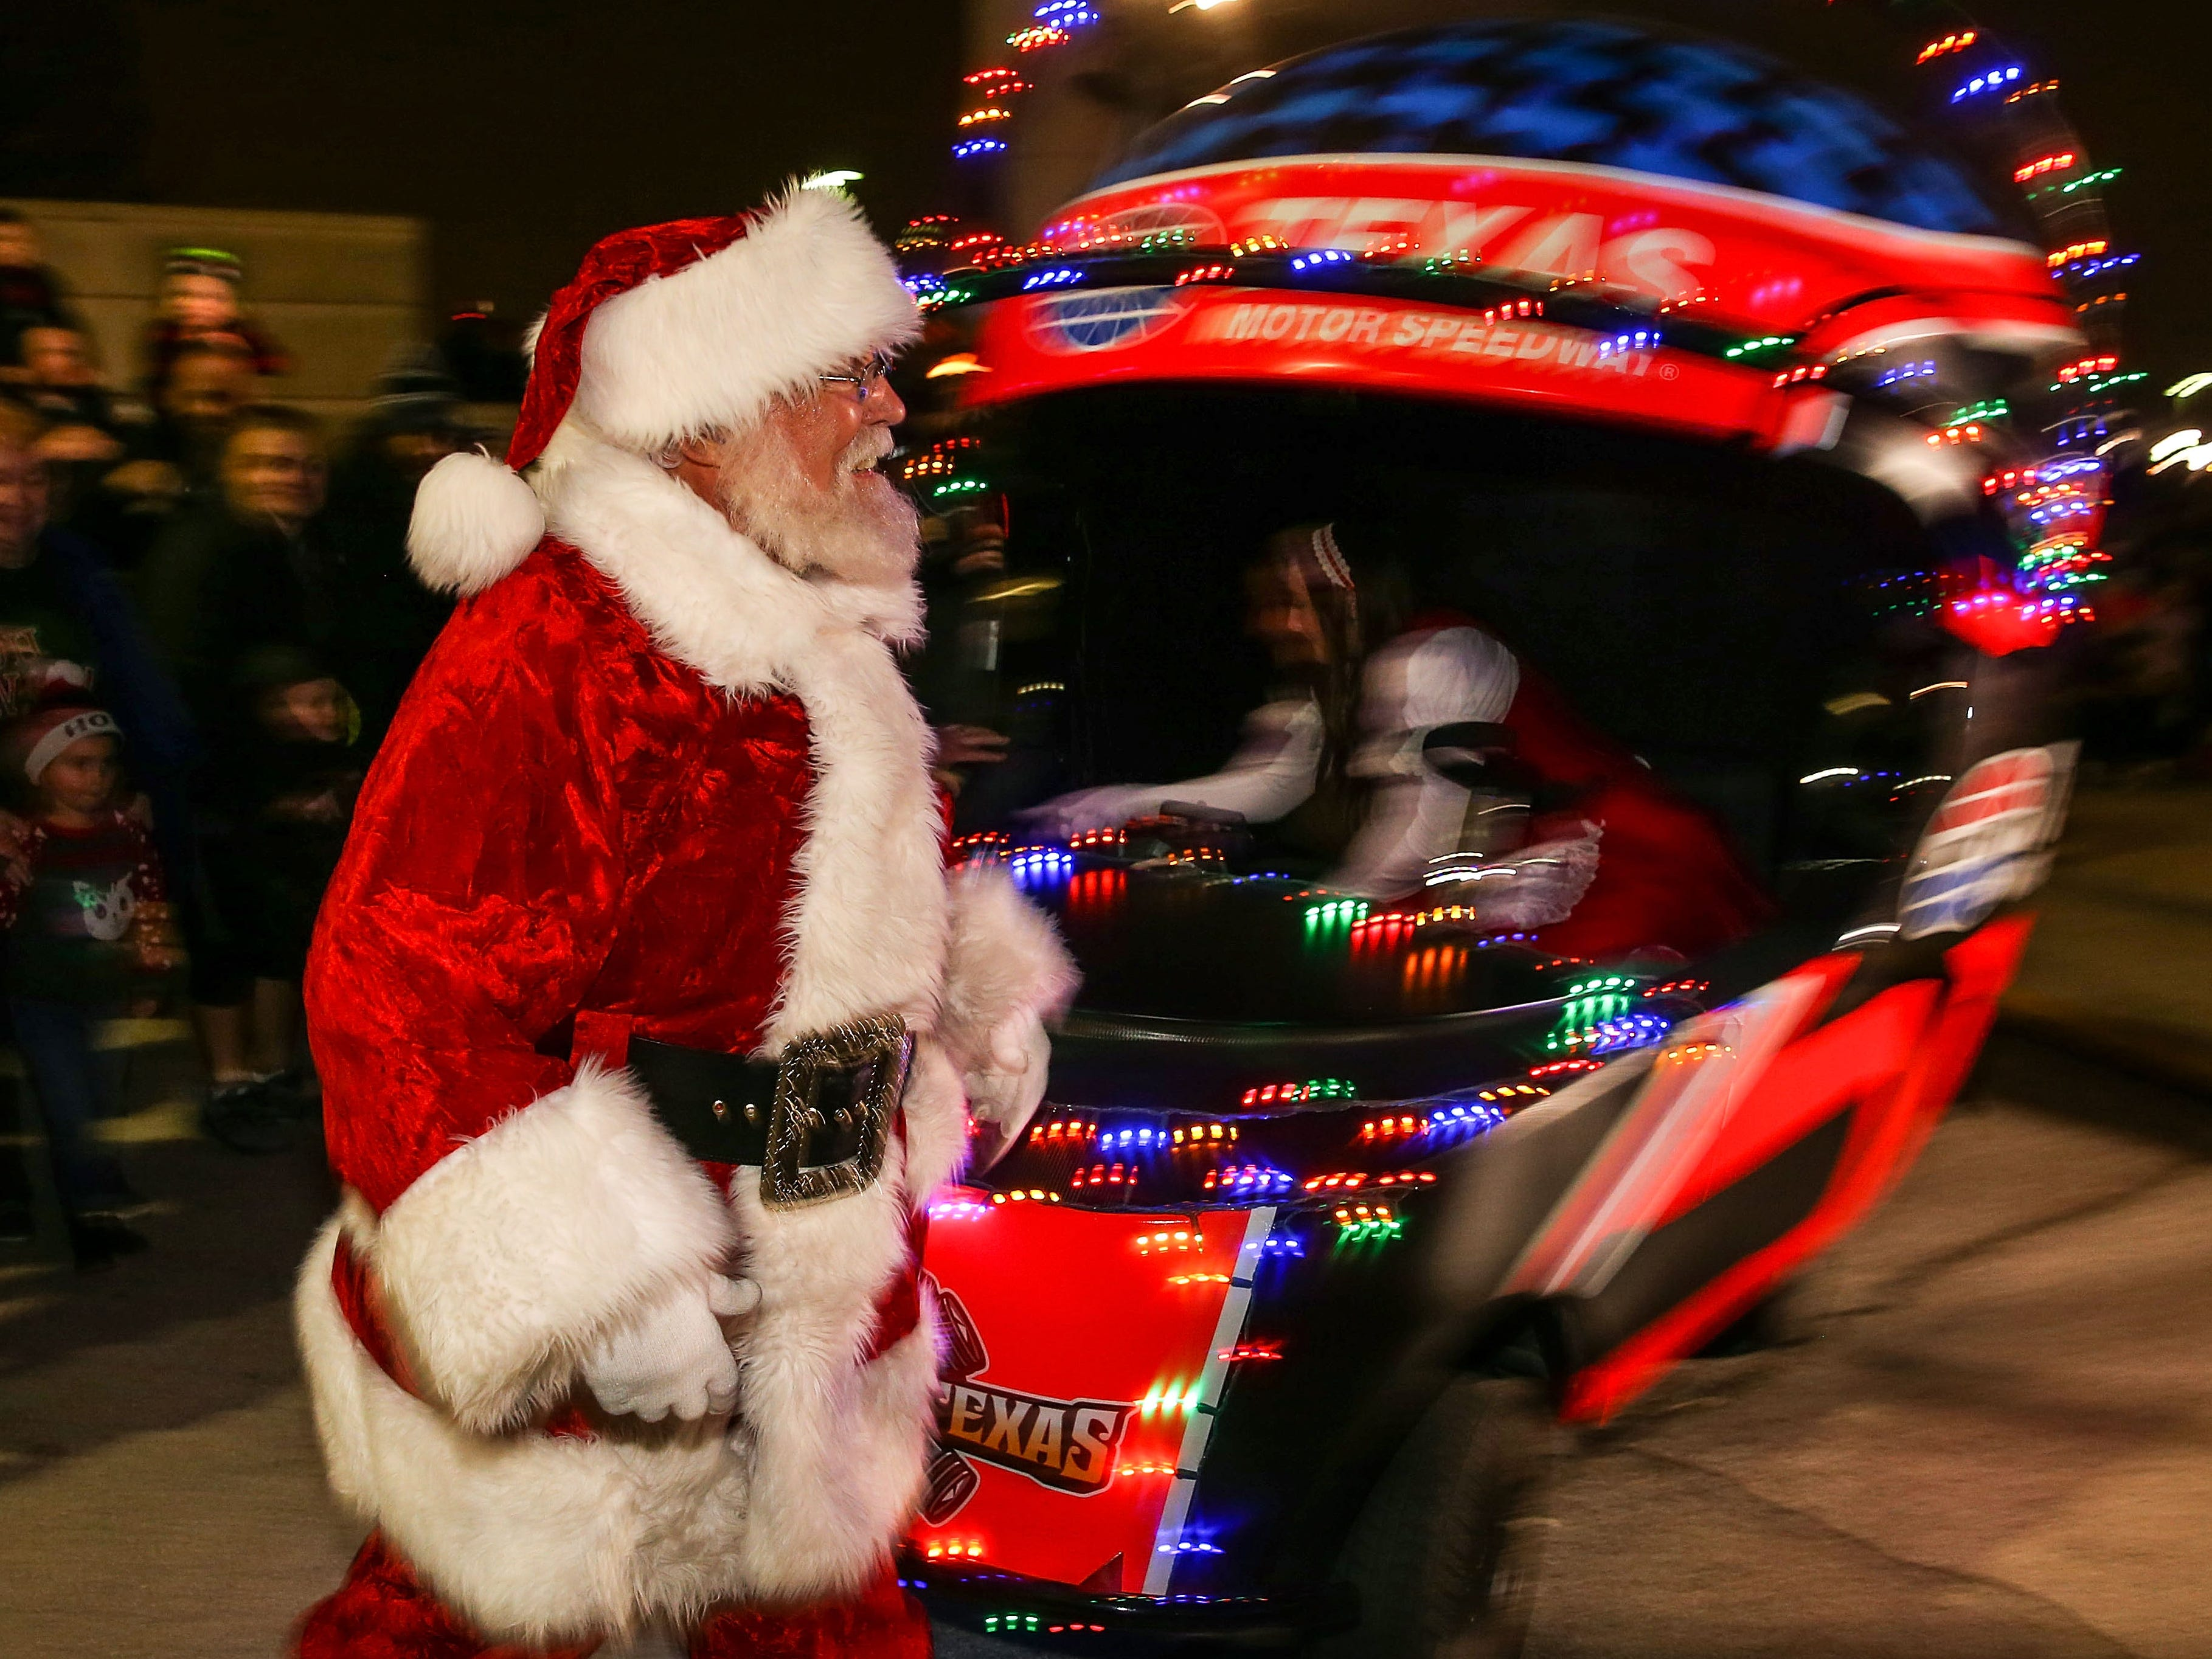 Santa Claus arrives at the Texas Motor Speedway Tree Lighting and Grant Ceremony at Texas Motor Speedway on Dec. 4, 2018, in Fort Worth, Texas.